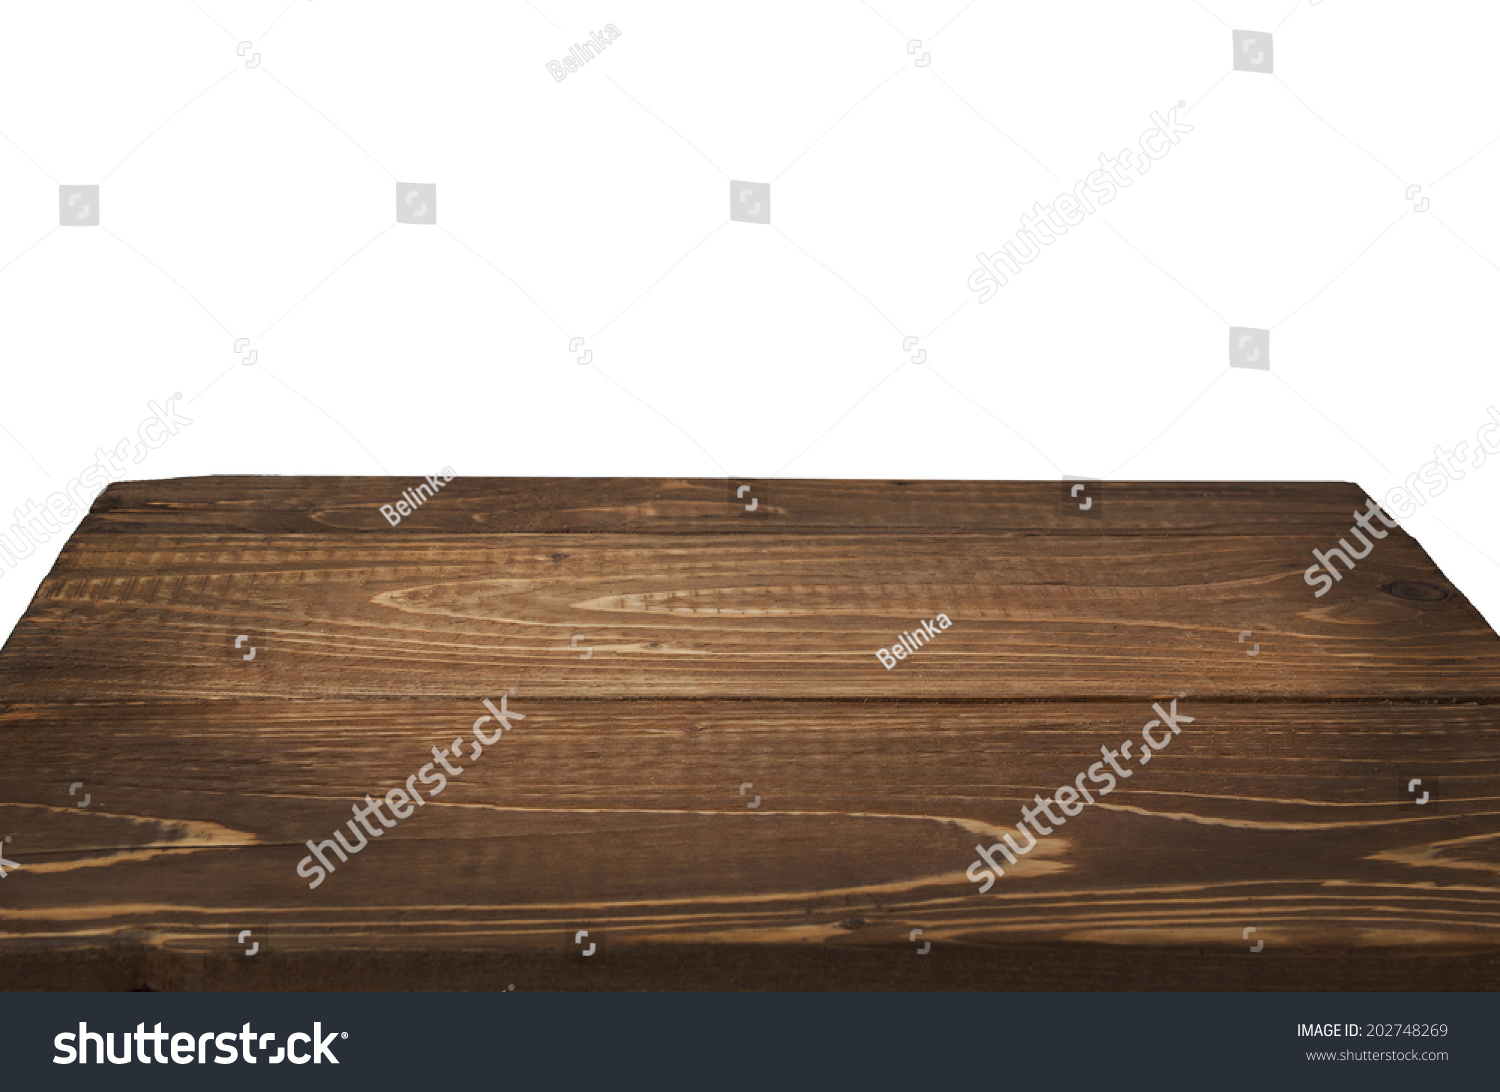 Wood Table Perspective On White Background Stock Photo ...